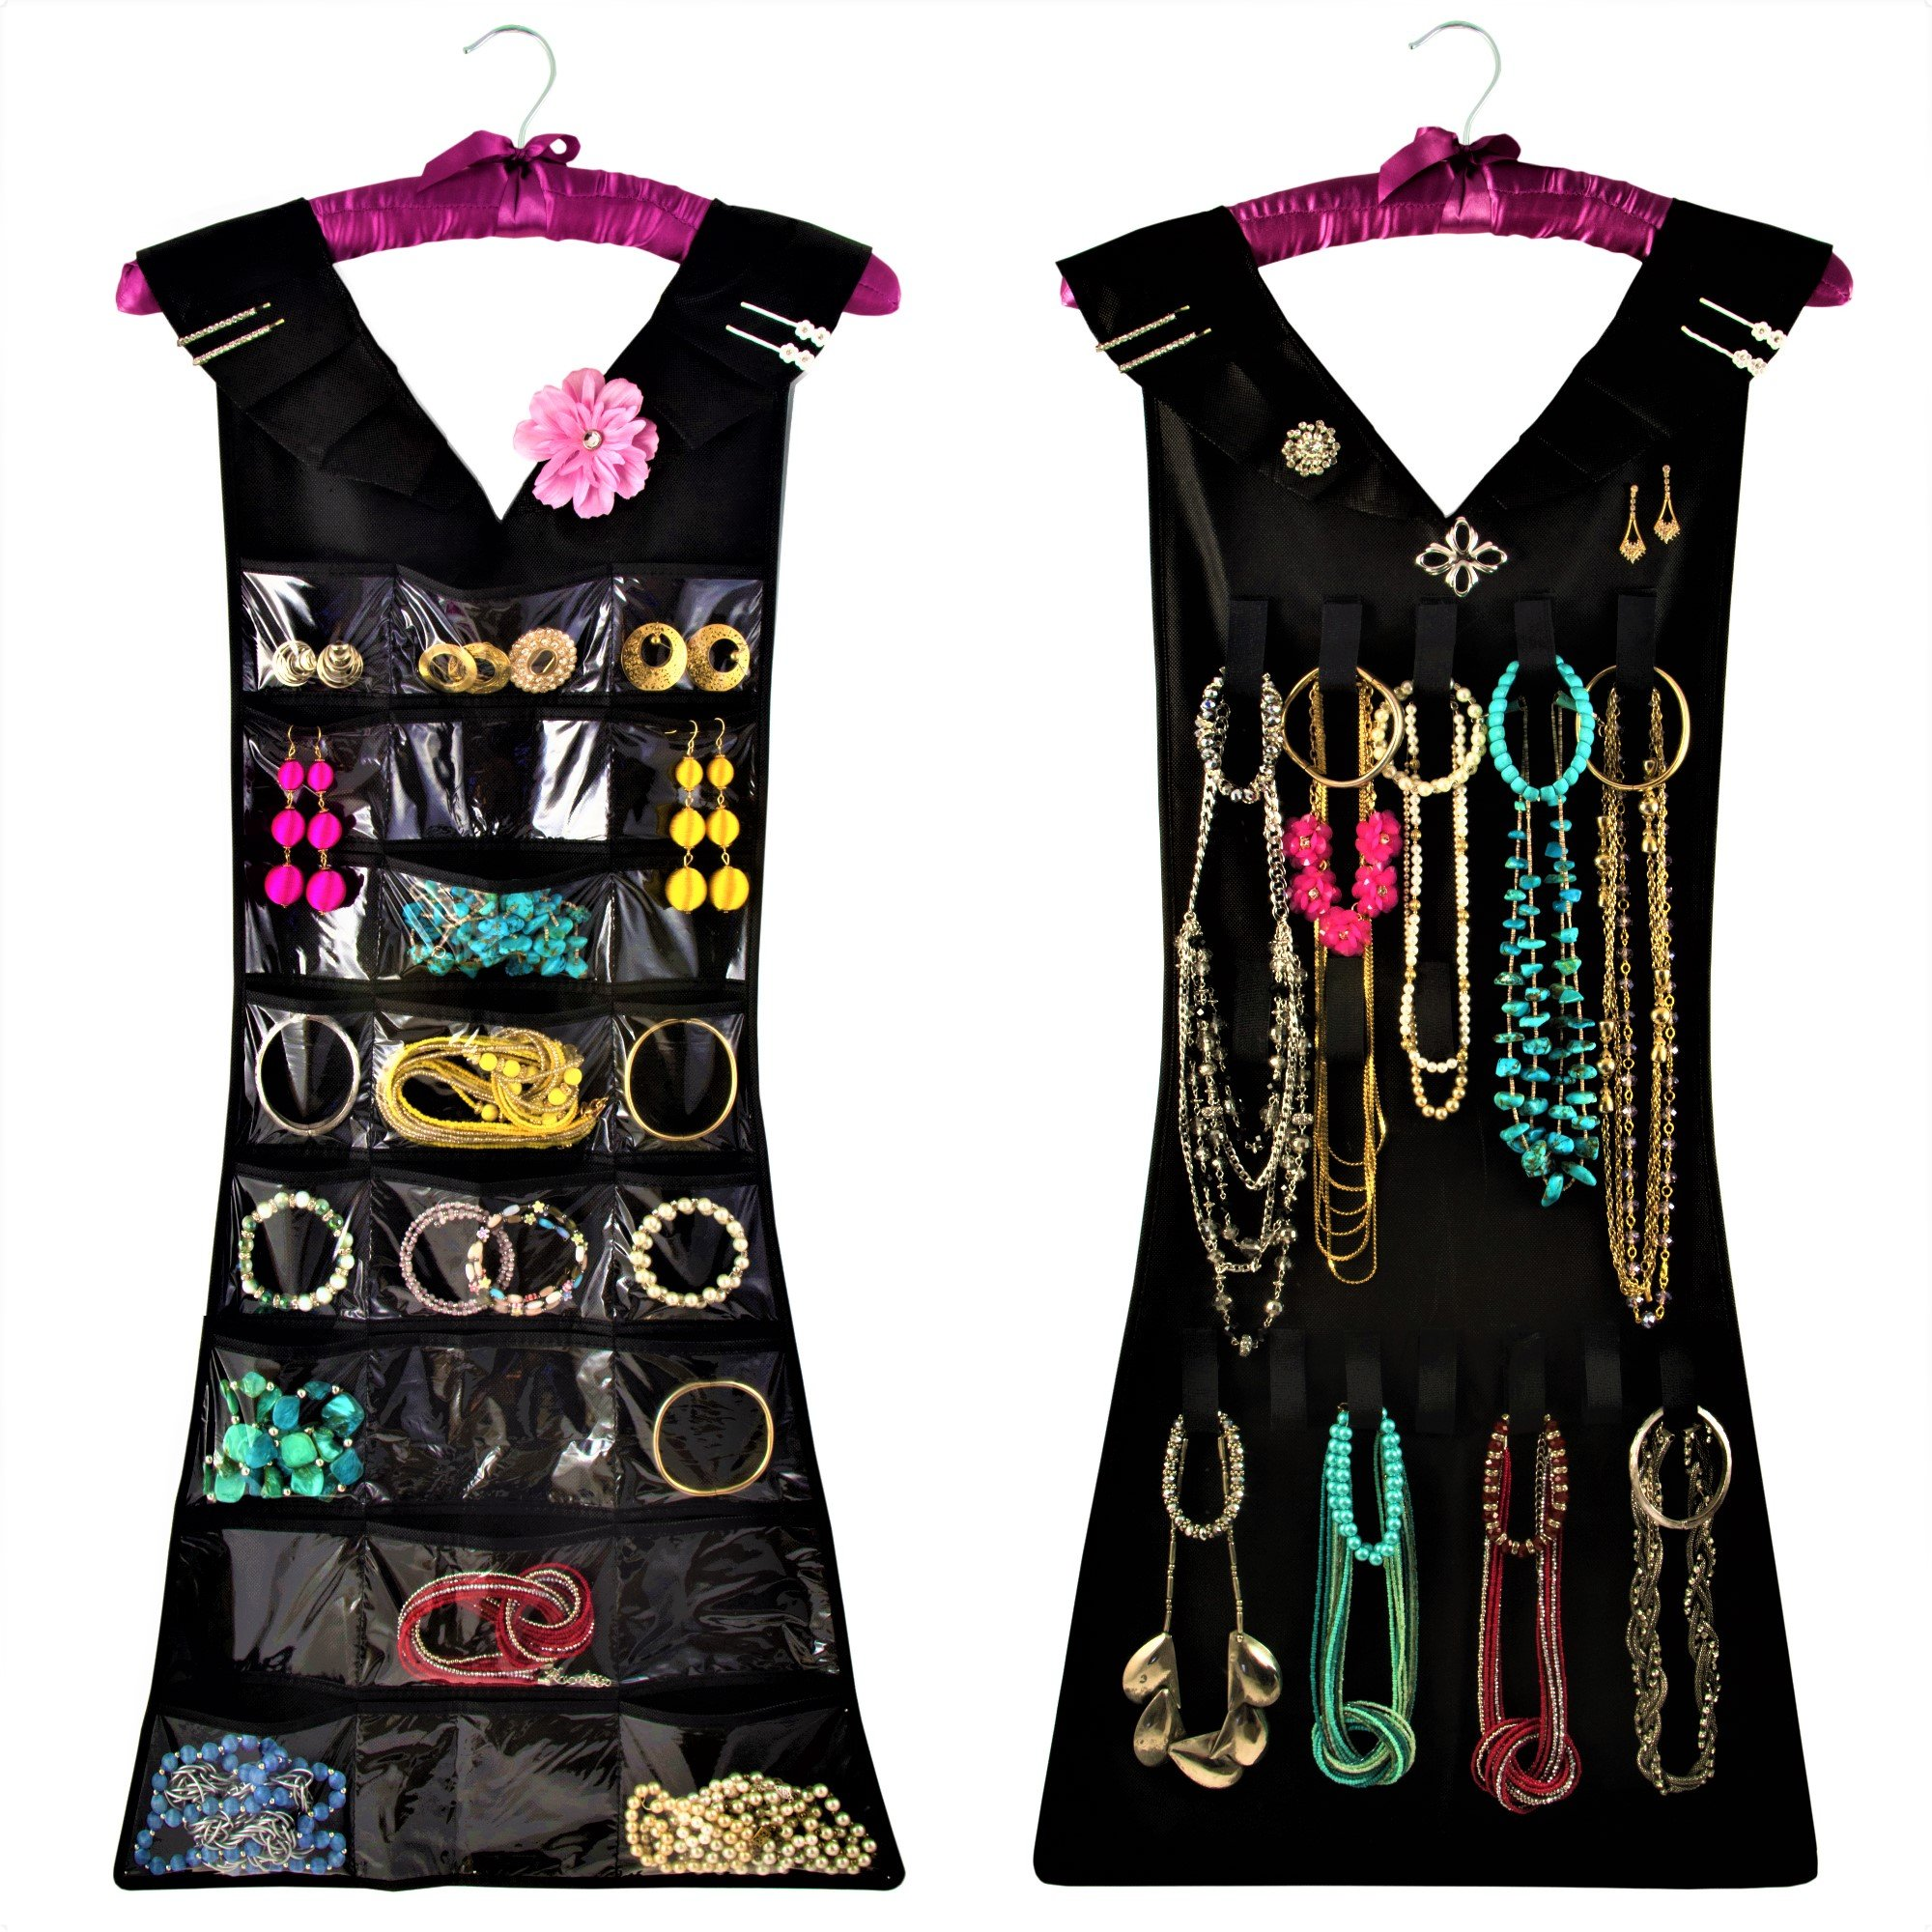 Marcus Mayfield Hanging Jewelry Organizer, Closet